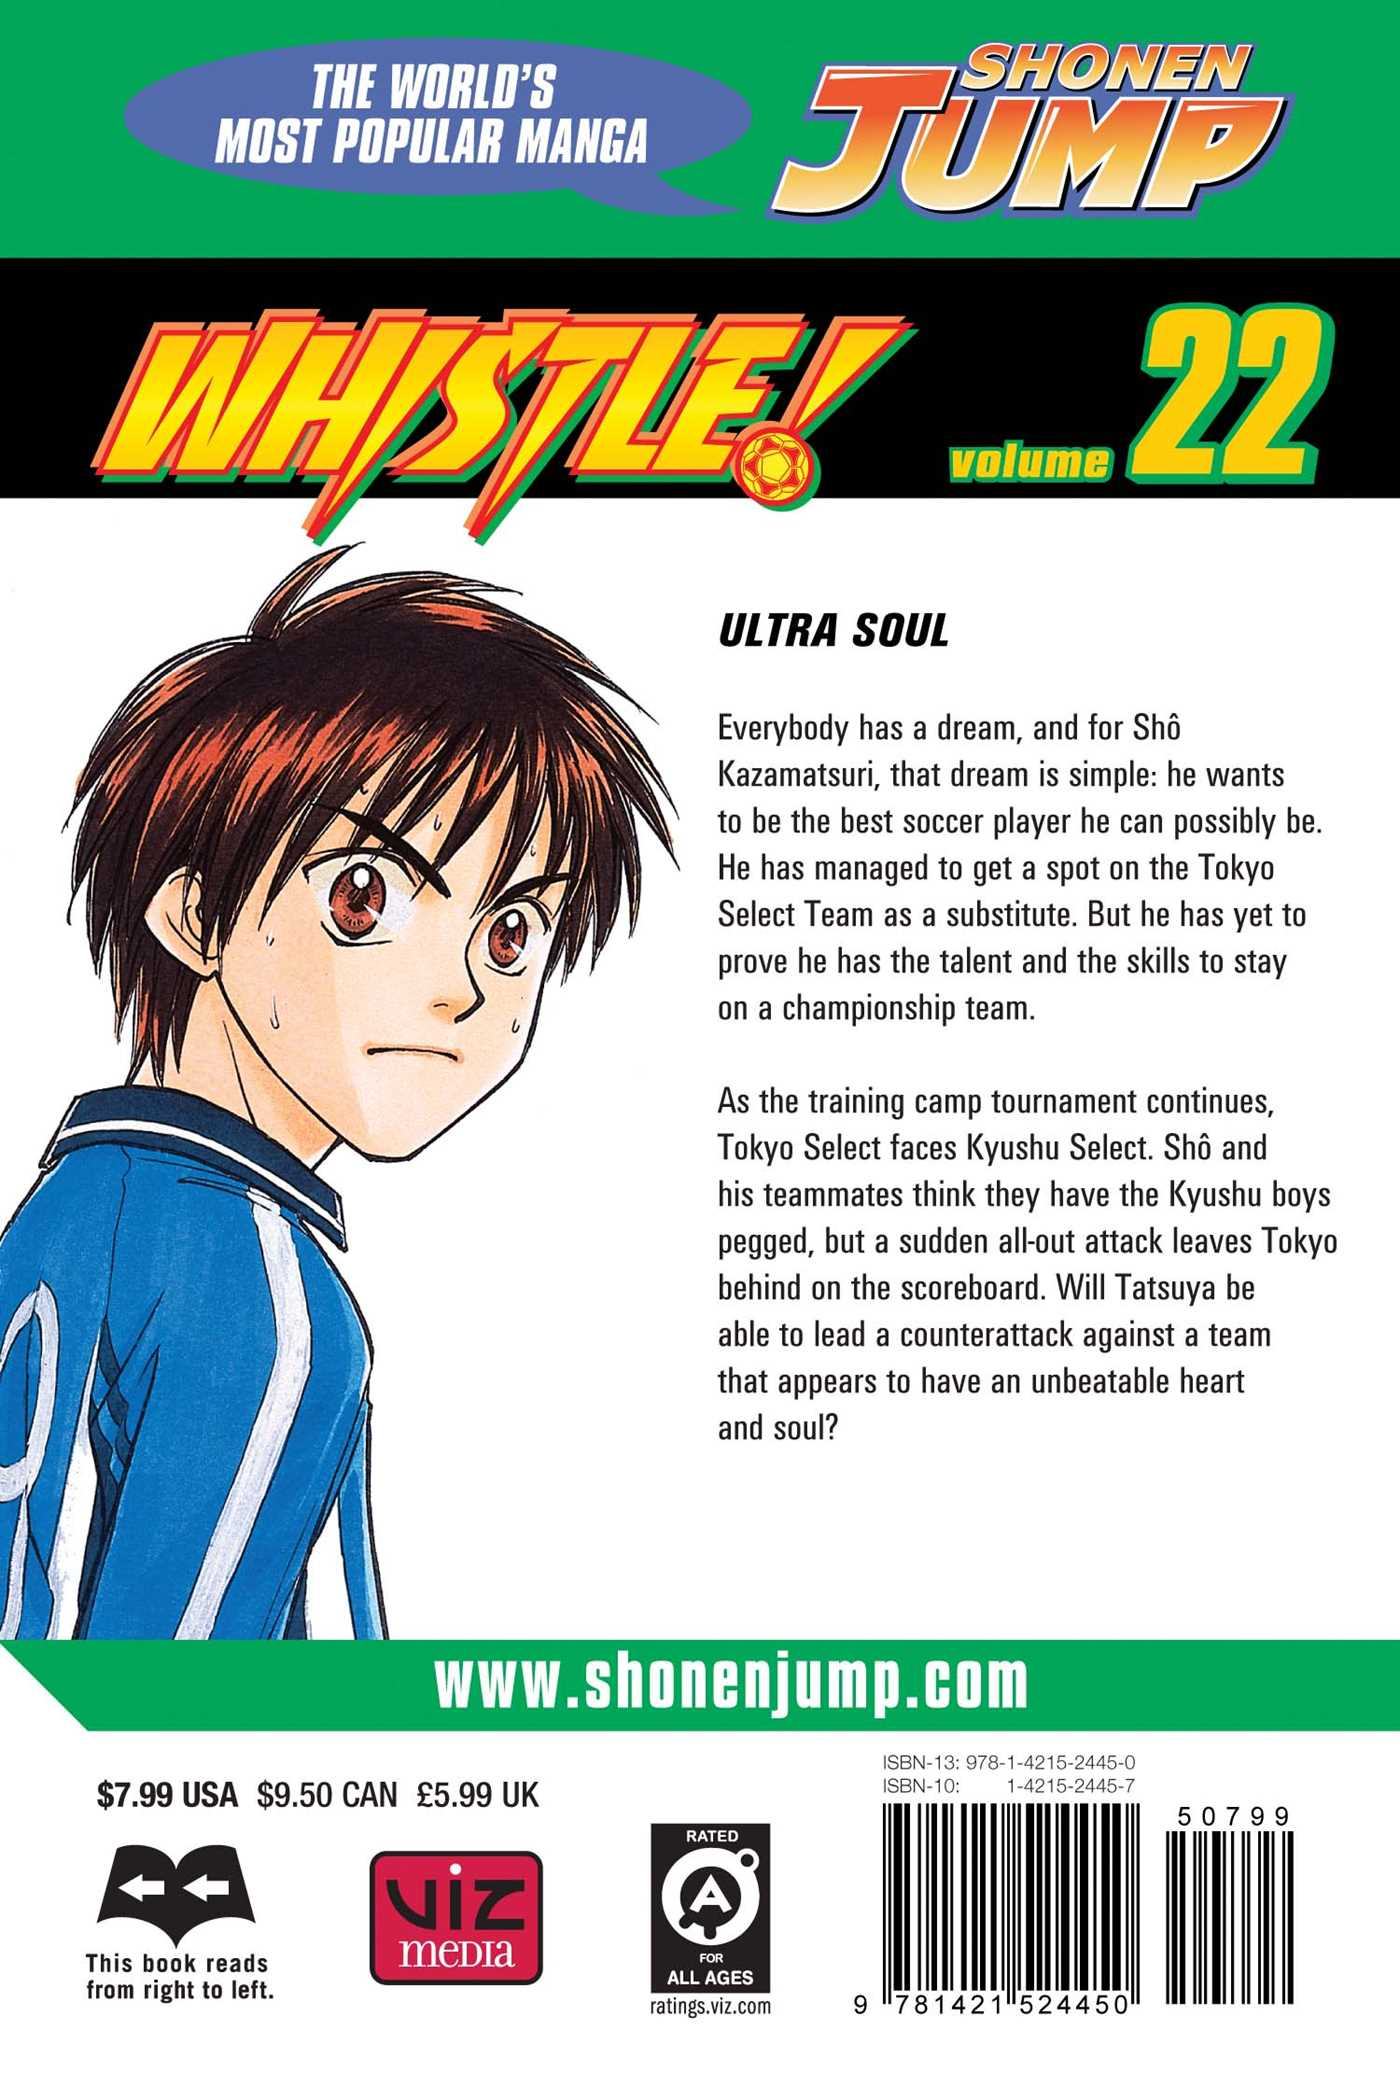 Whistle-vol-22-9781421524450_hr-back